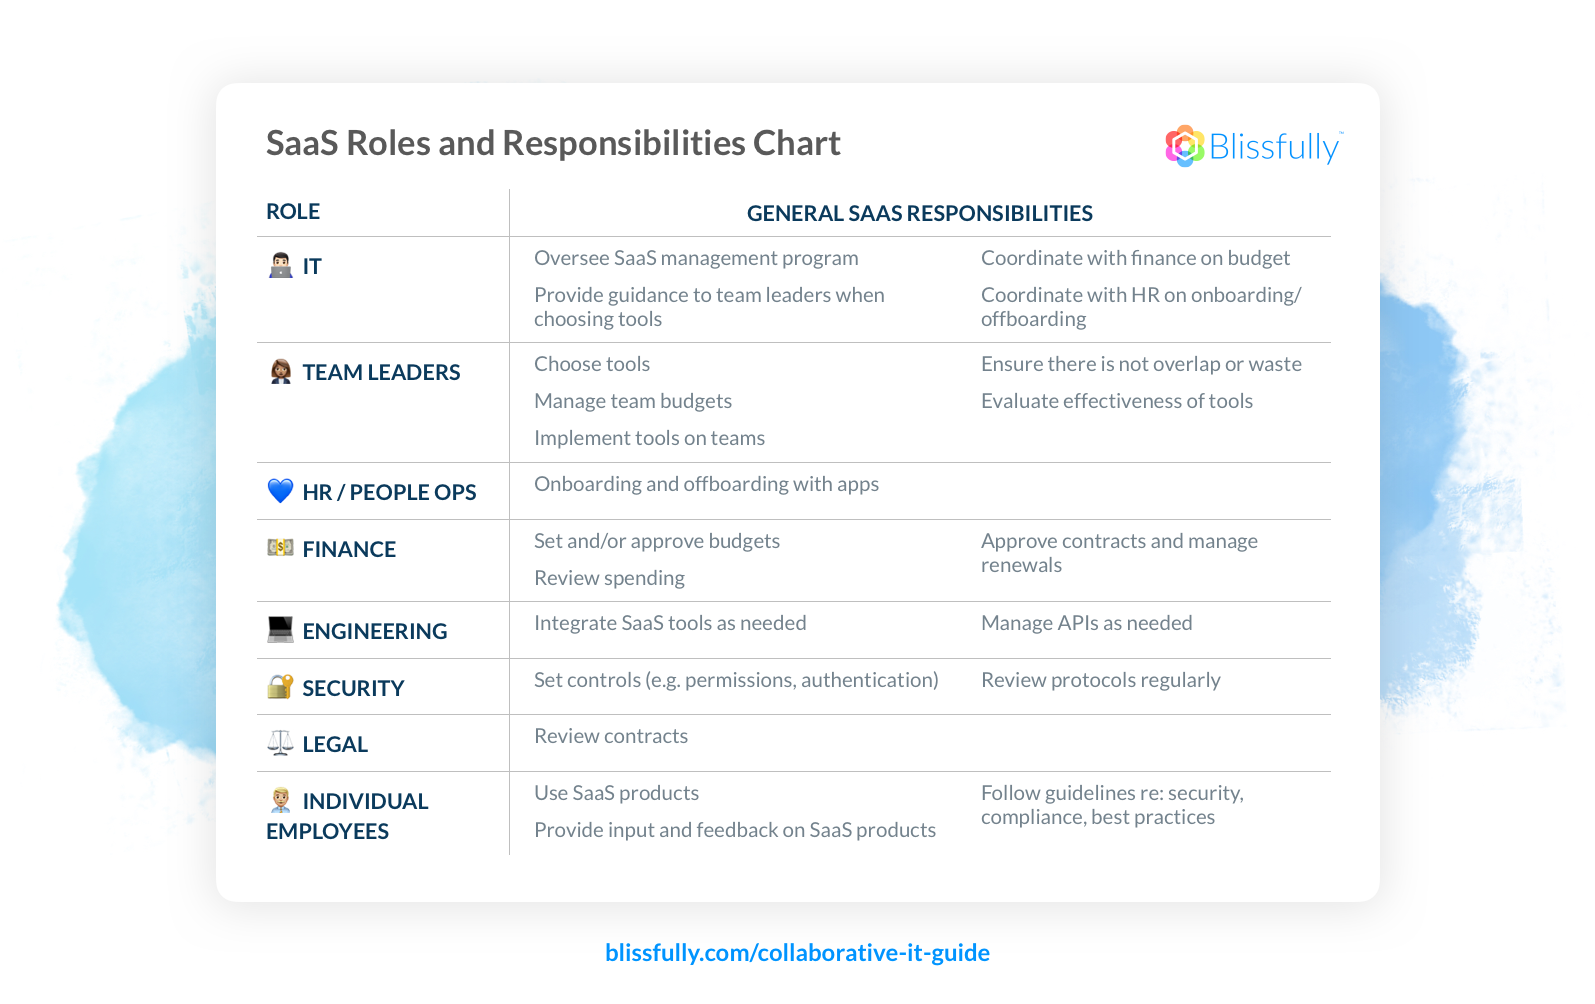 SaaS Roles and Responsibilities Chart